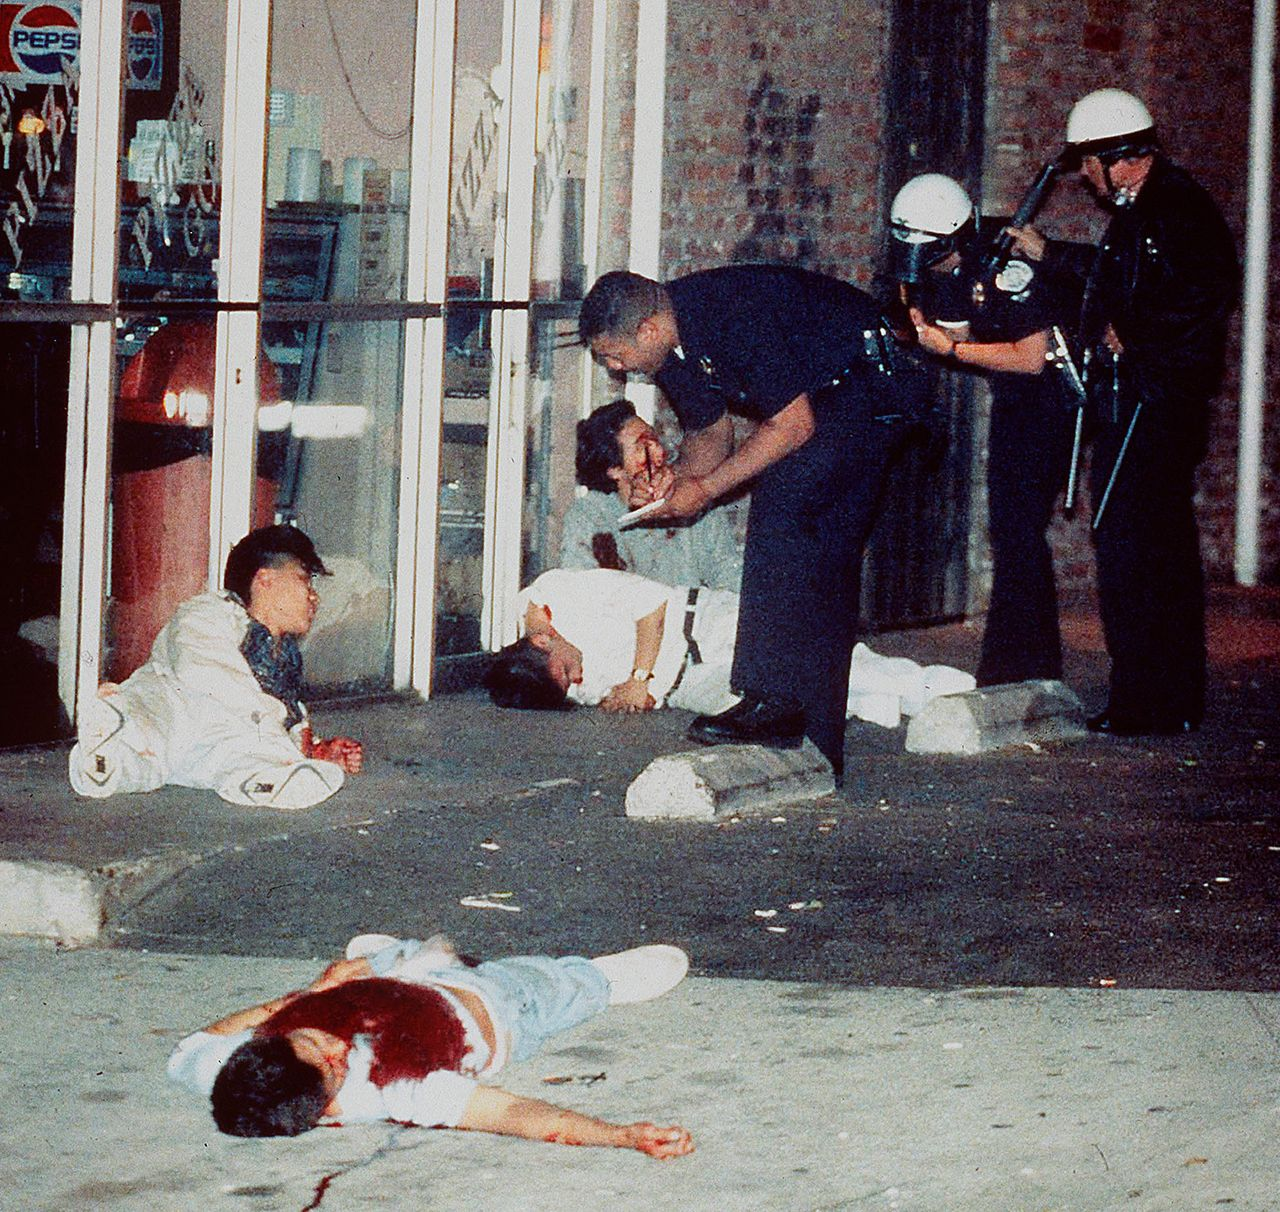 Edward Song Lee, 18, foreground, was shot to death and three other people were injured at 3rd and Hobart streets in Los Angeles' Koreatown on April 30, 1992. Police questioned the survivors of the attack, who were shot while trying to protect a Korean-owned pizza parlor.